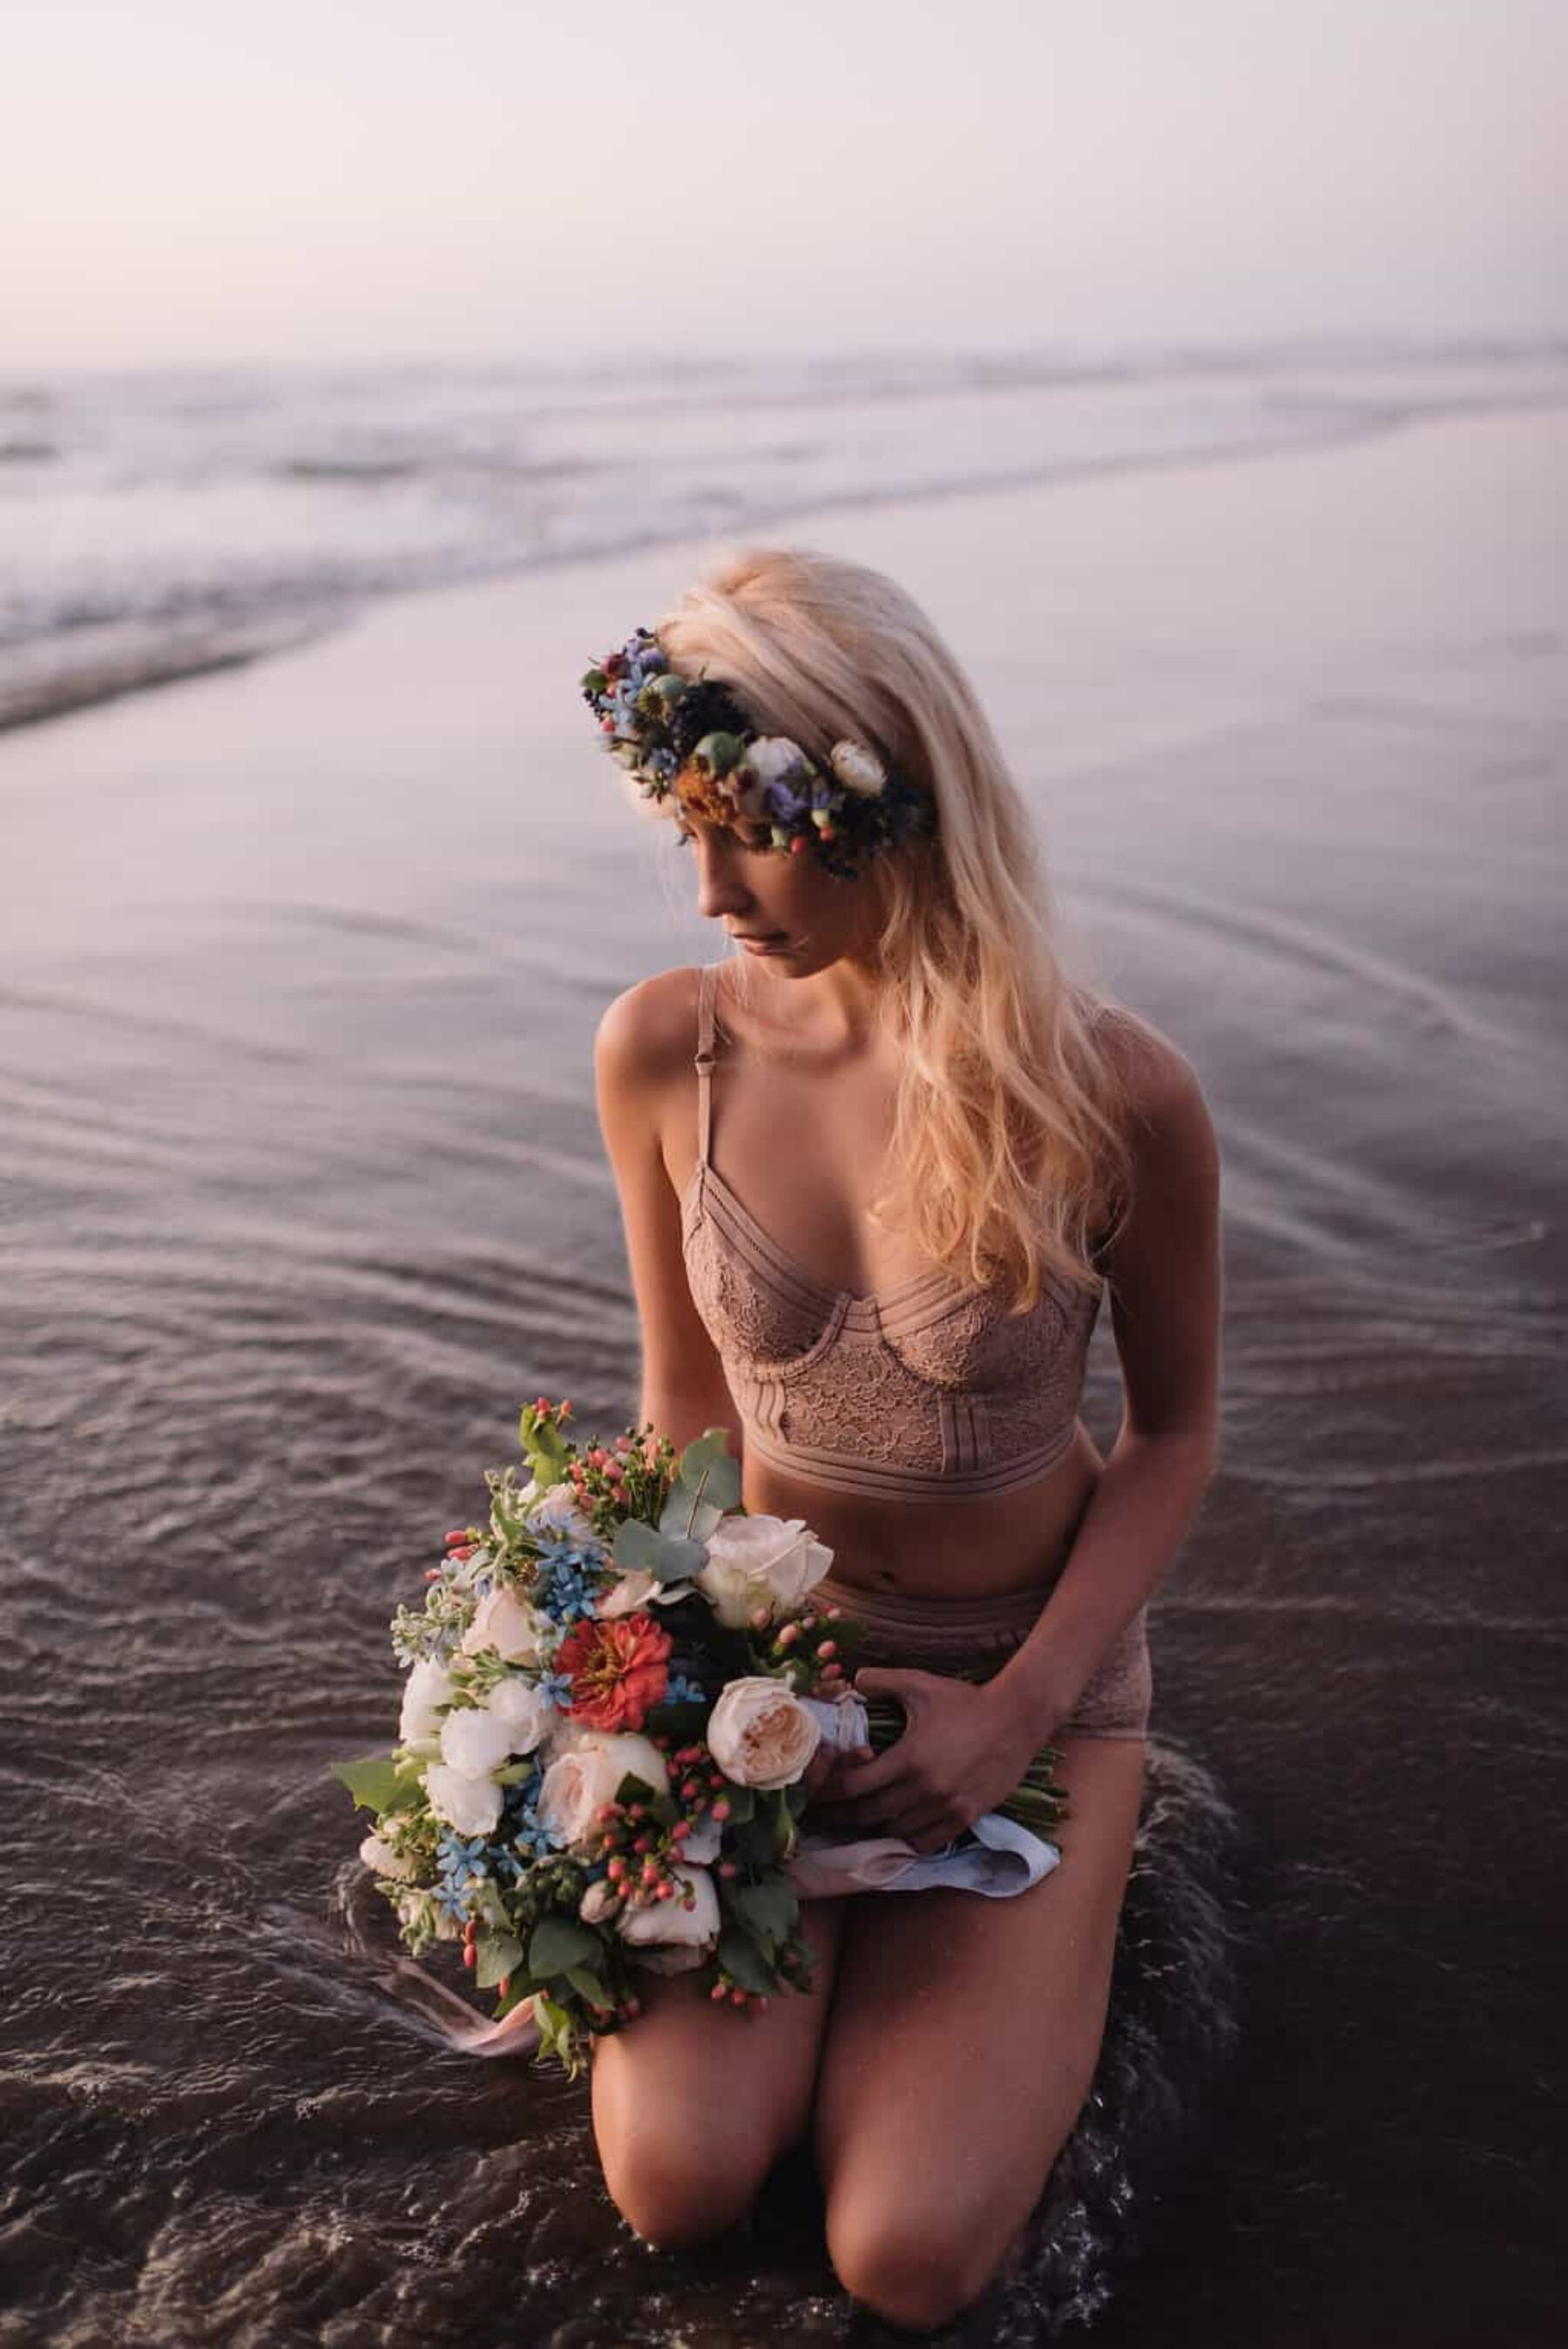 Bohemian beach wedding editorial by Nisha Ravji